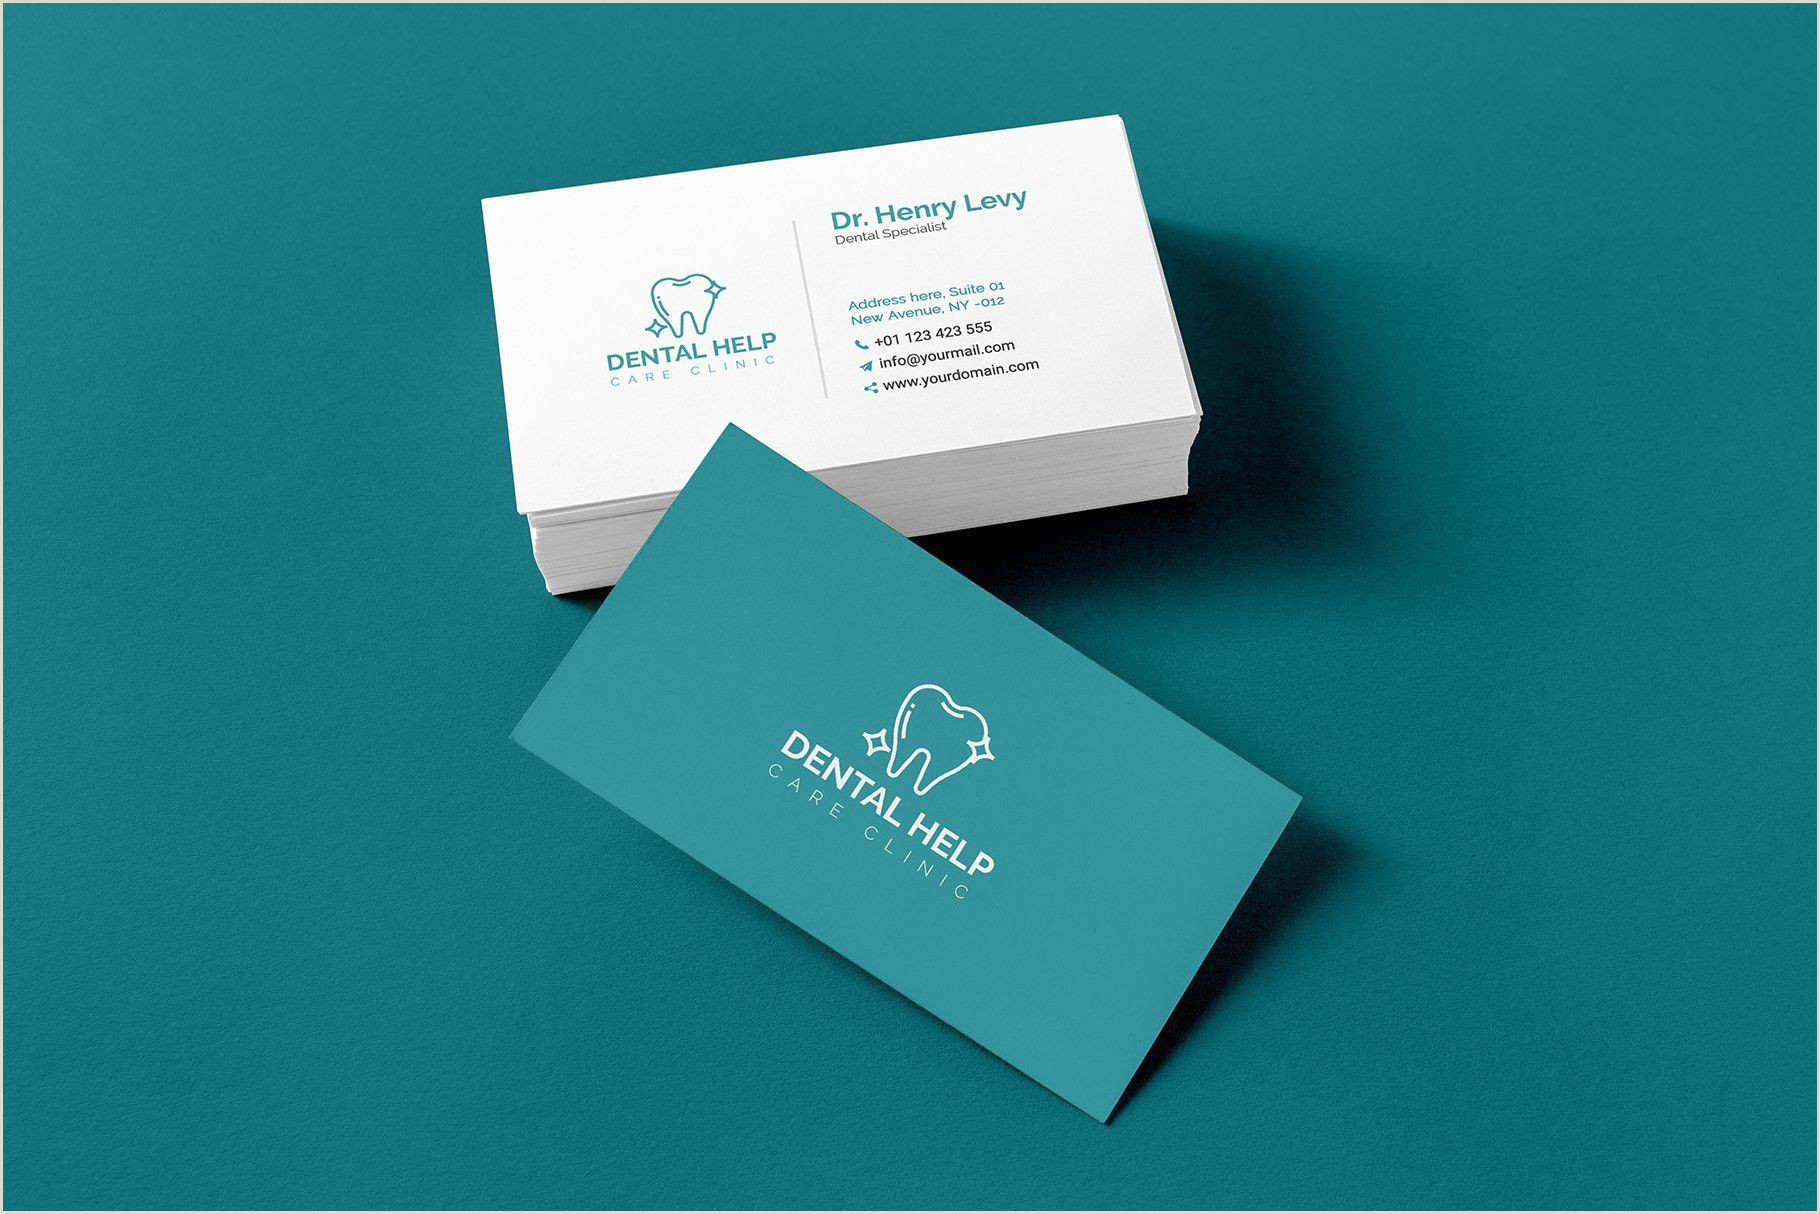 Business Cards With Gold Lettering Dentist Business Card Templates In 2020